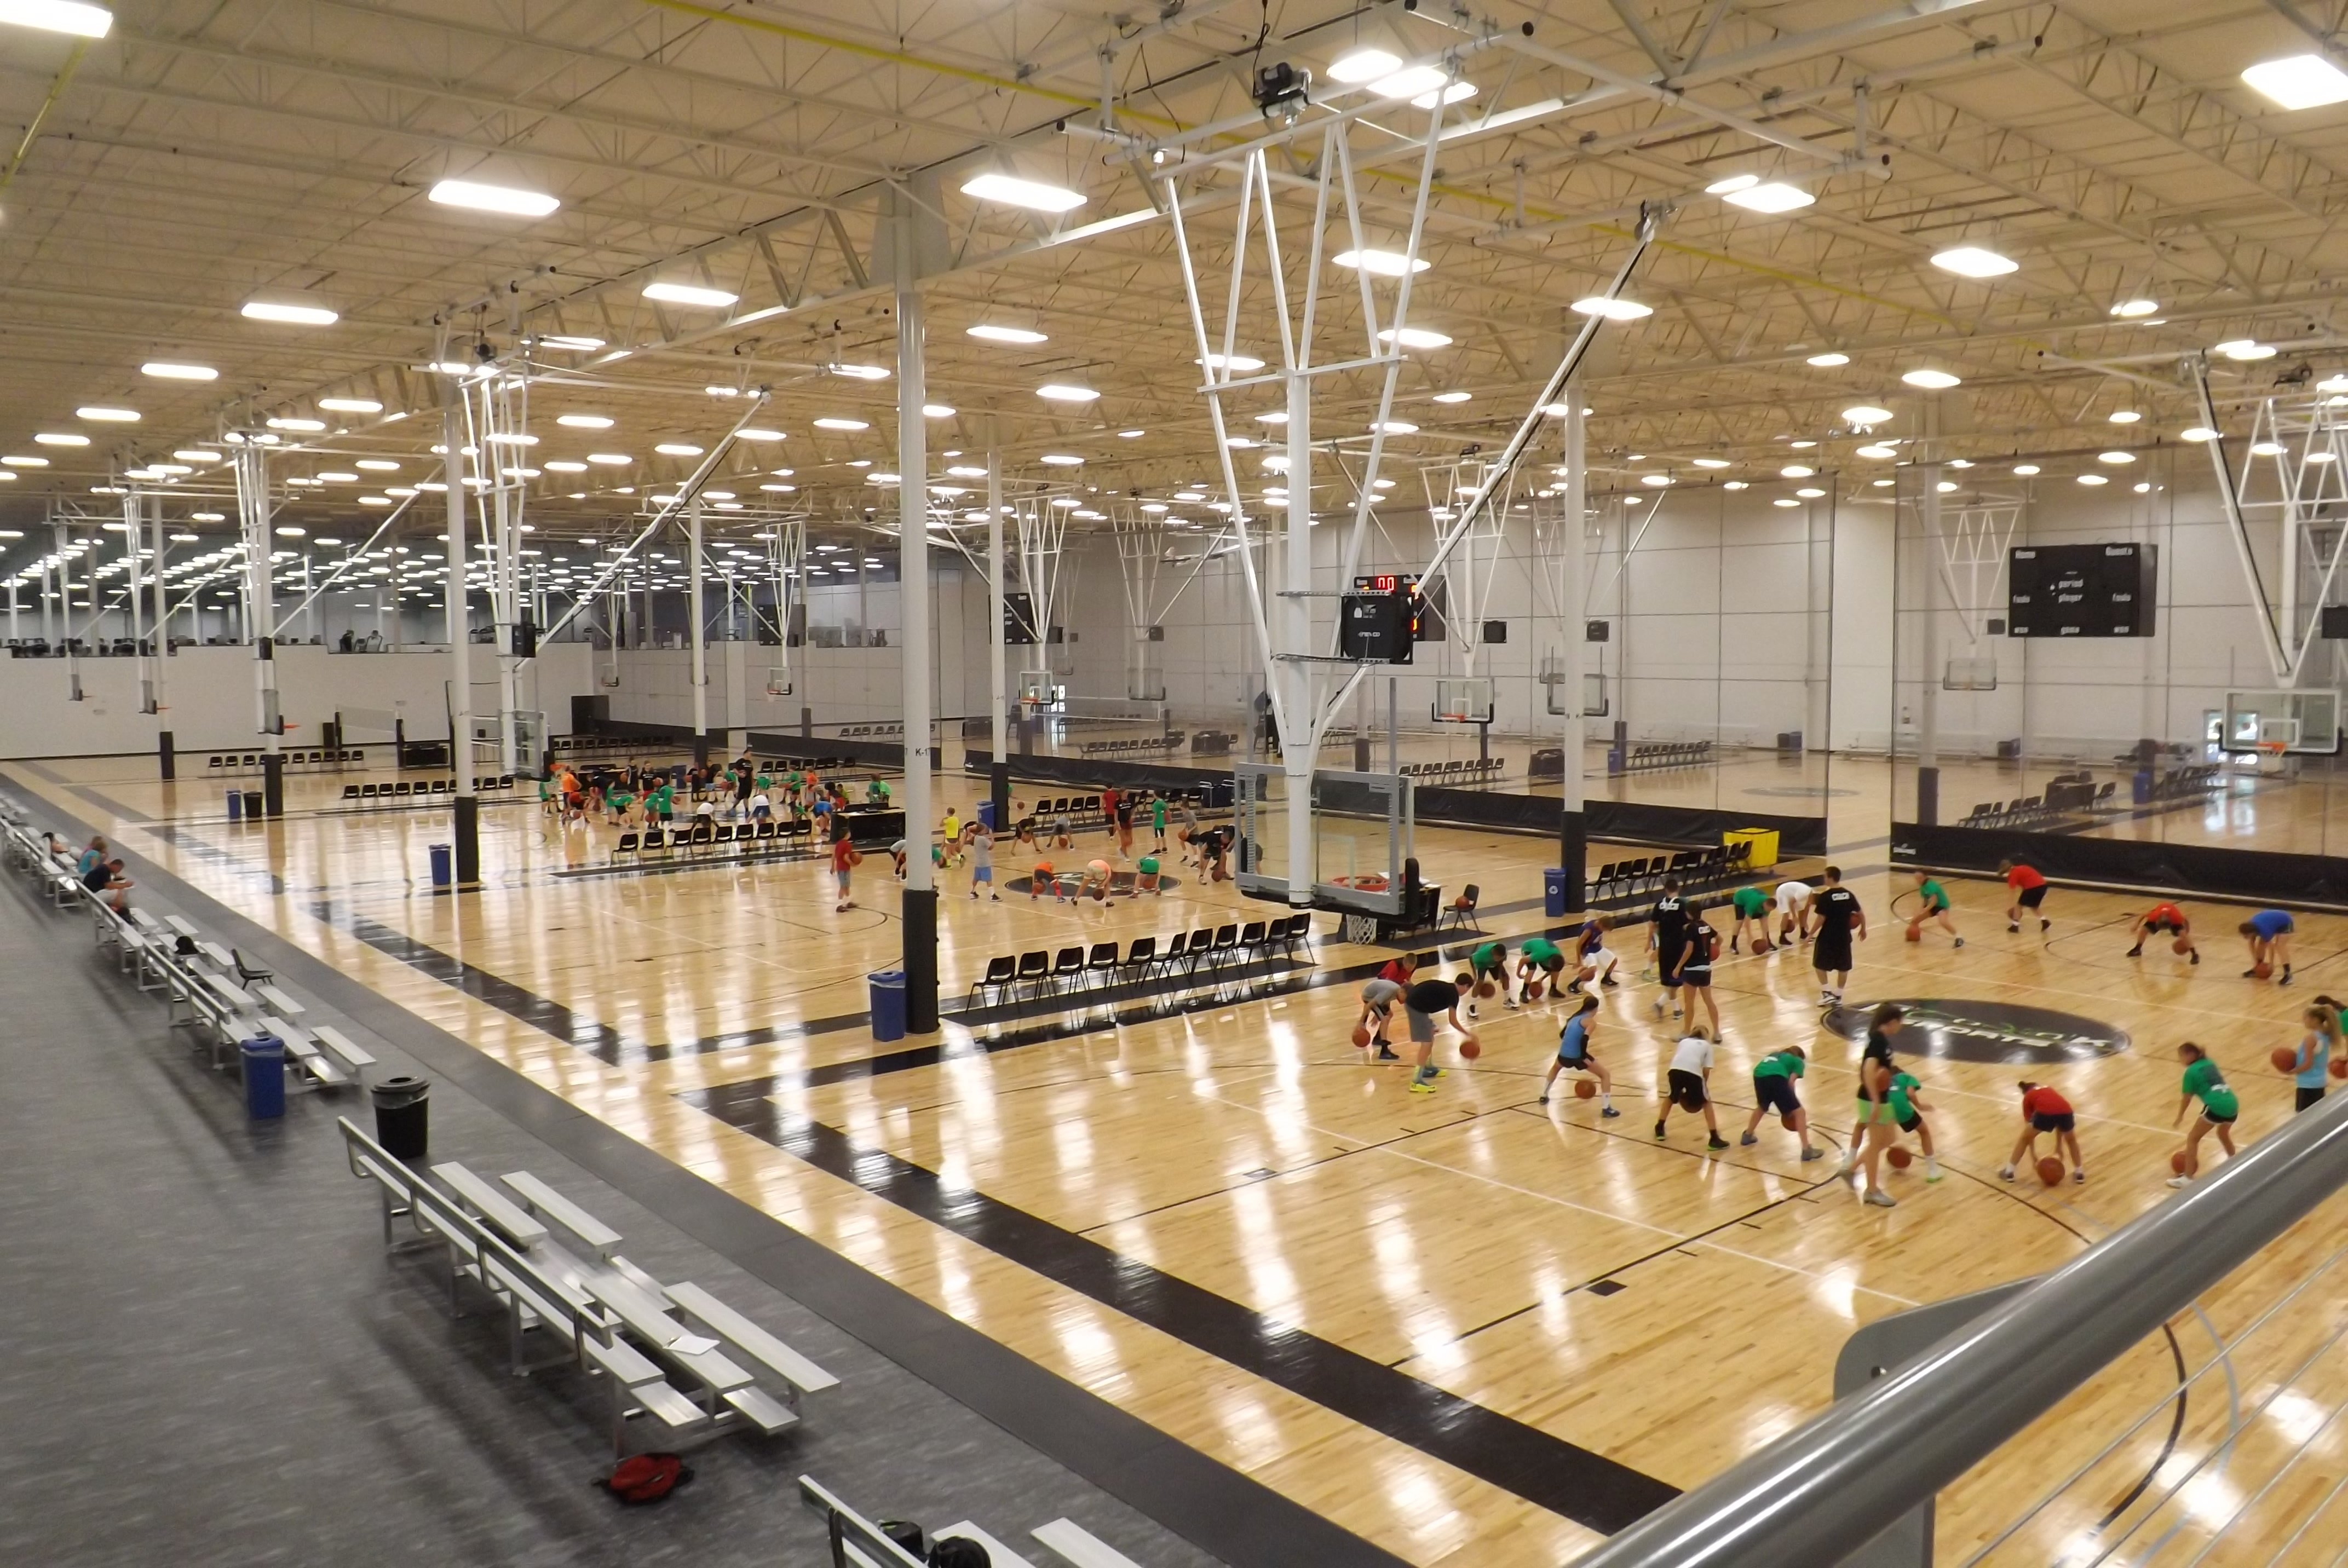 Basketball-Volleyball Courts